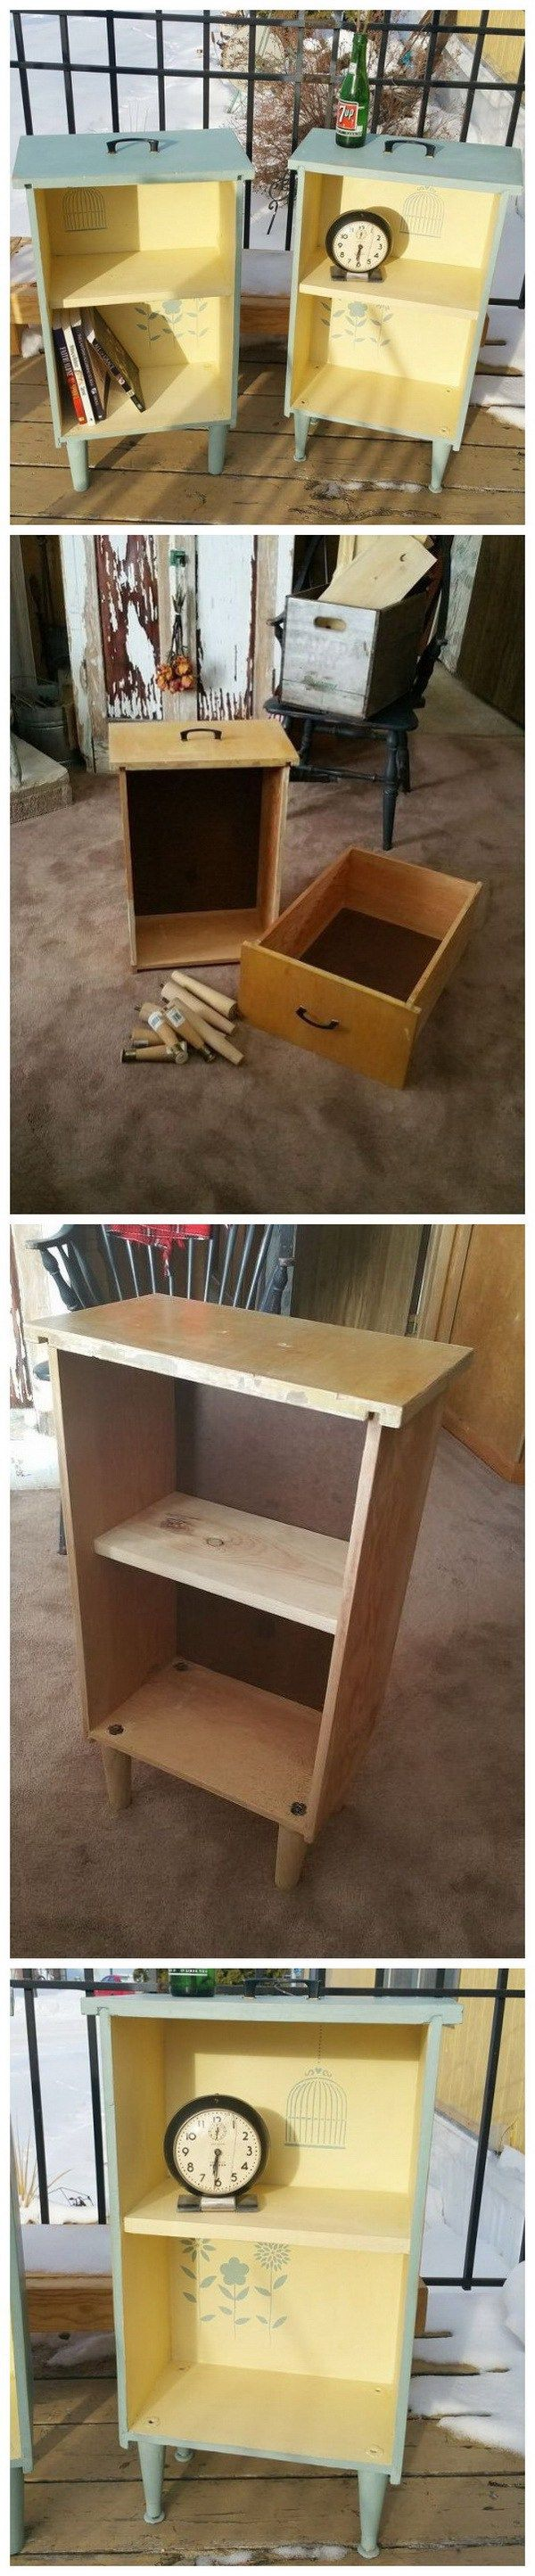 How to make dresser drawers - 20 Diy Ideas To Reuse Old Furniture